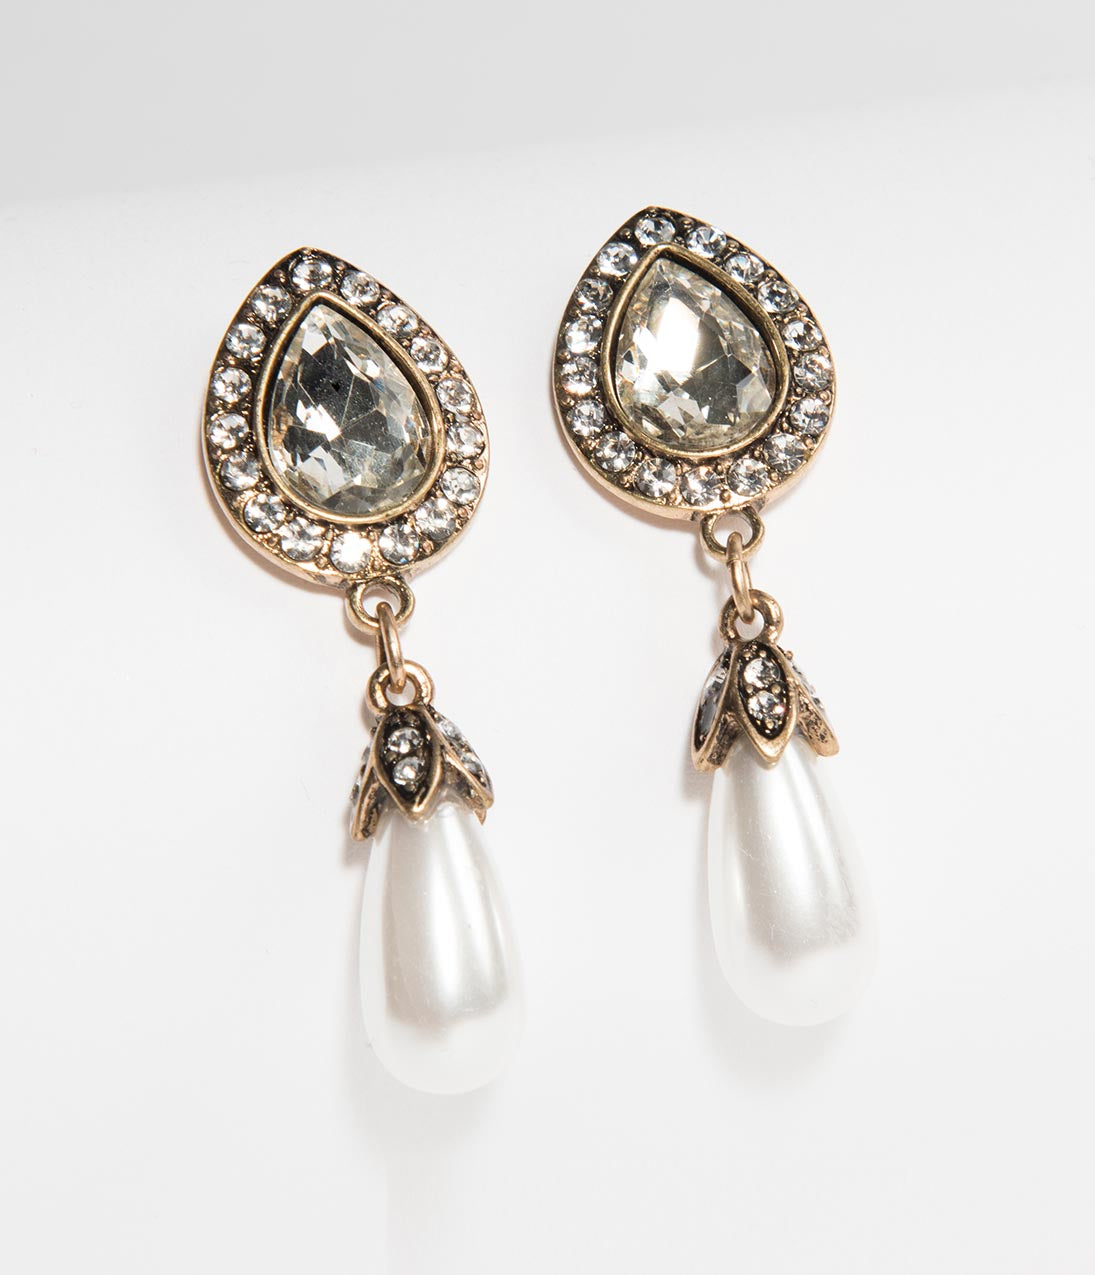 1930s Jewelry | Art Deco Style Jewelry Vintage Style Ivory Pearl  Silver Crystal Teardrop Earrings $22.00 AT vintagedancer.com